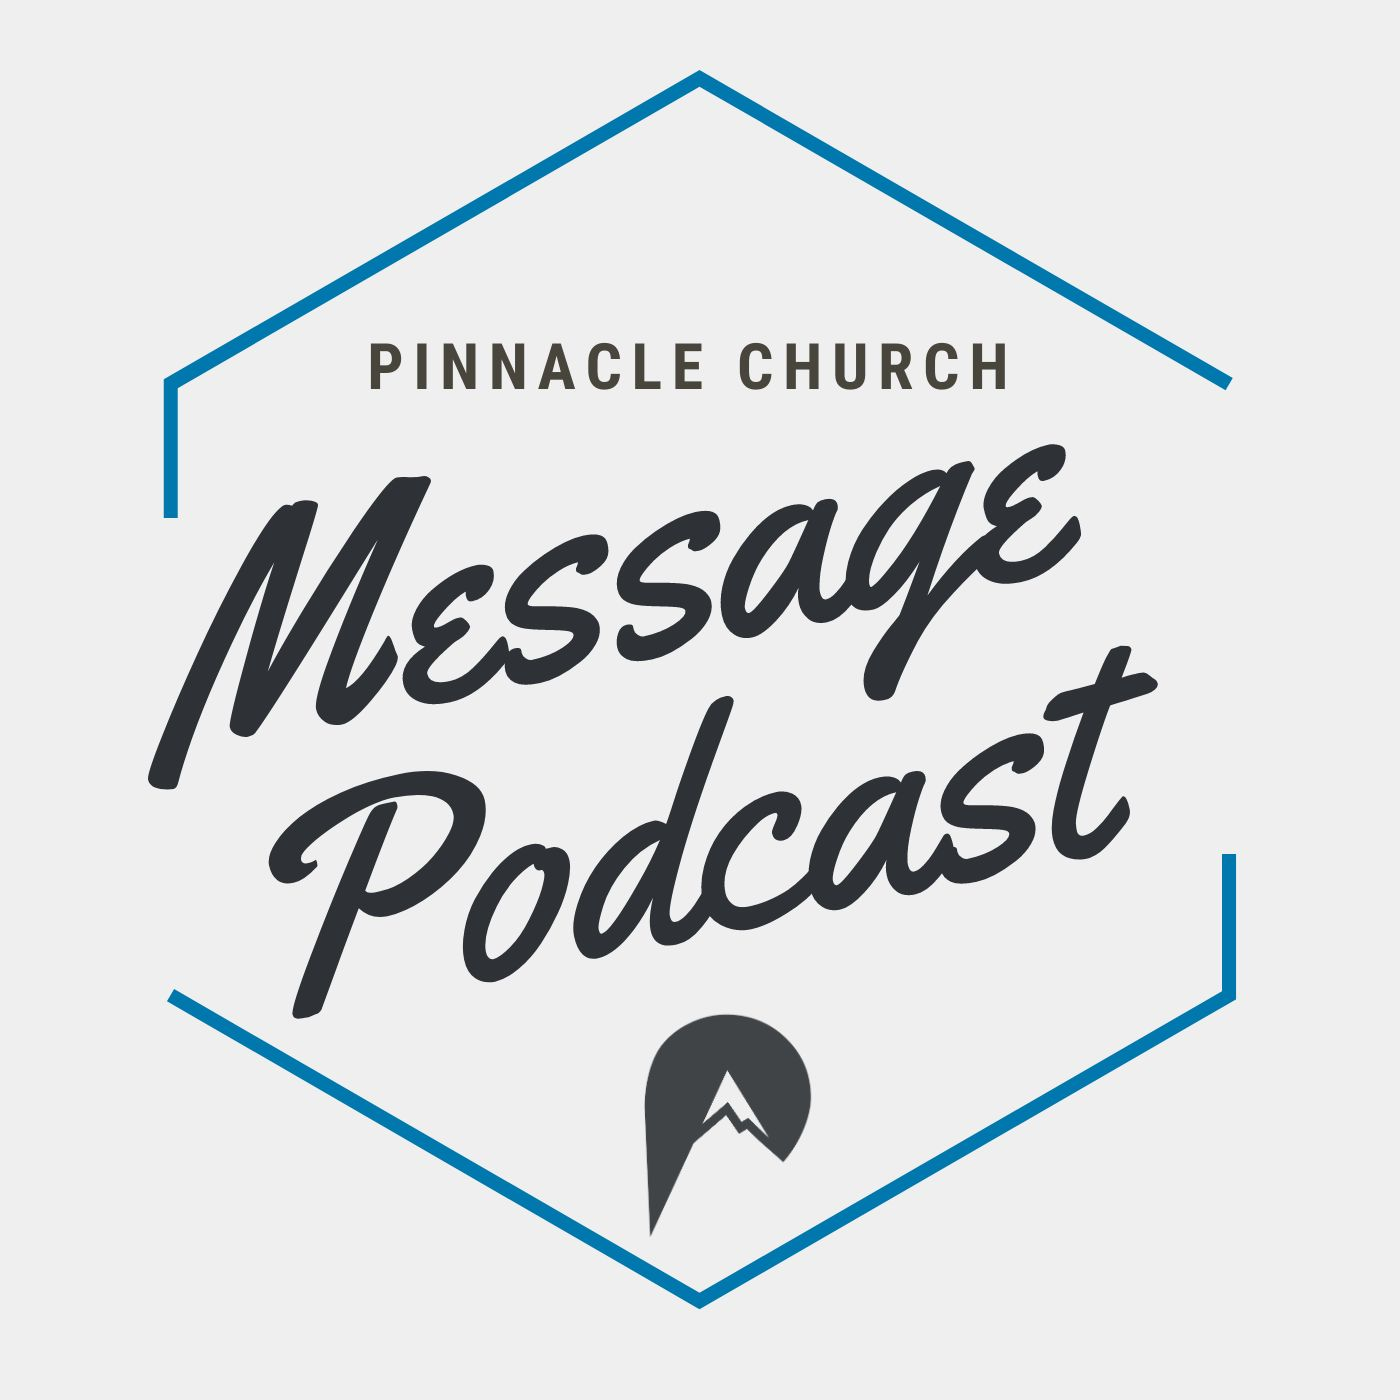 Pinnacle Church Sunday Message